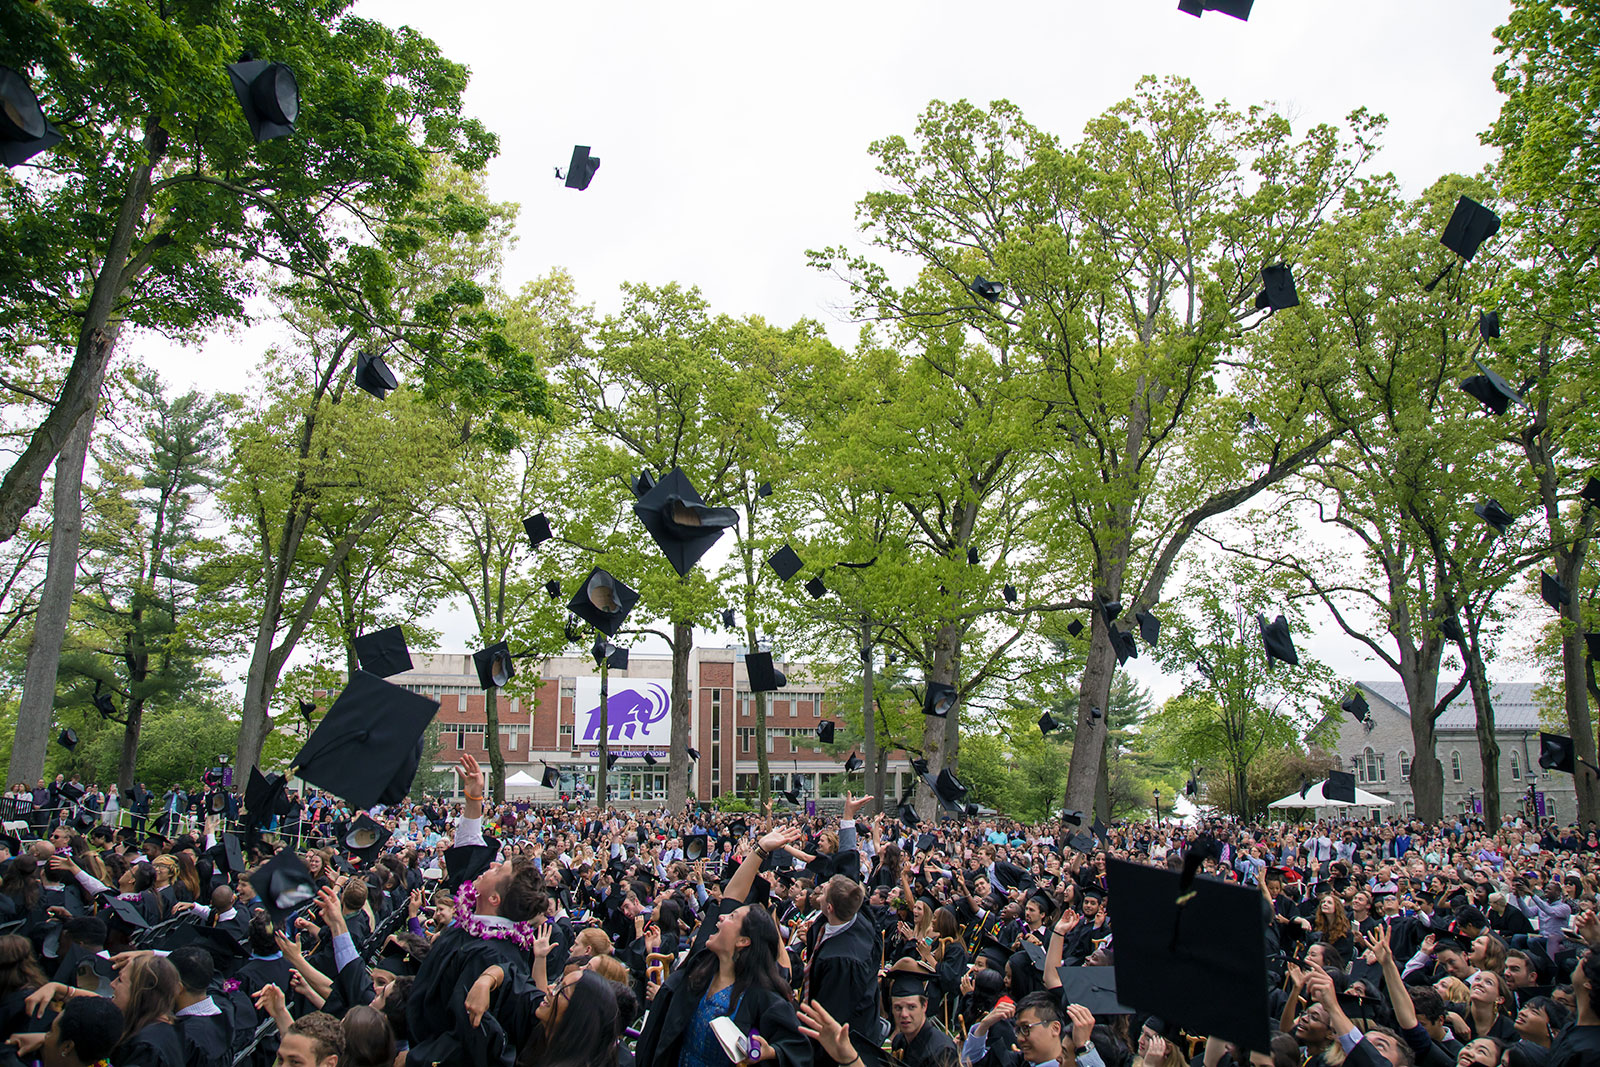 Caps flying at Commencement